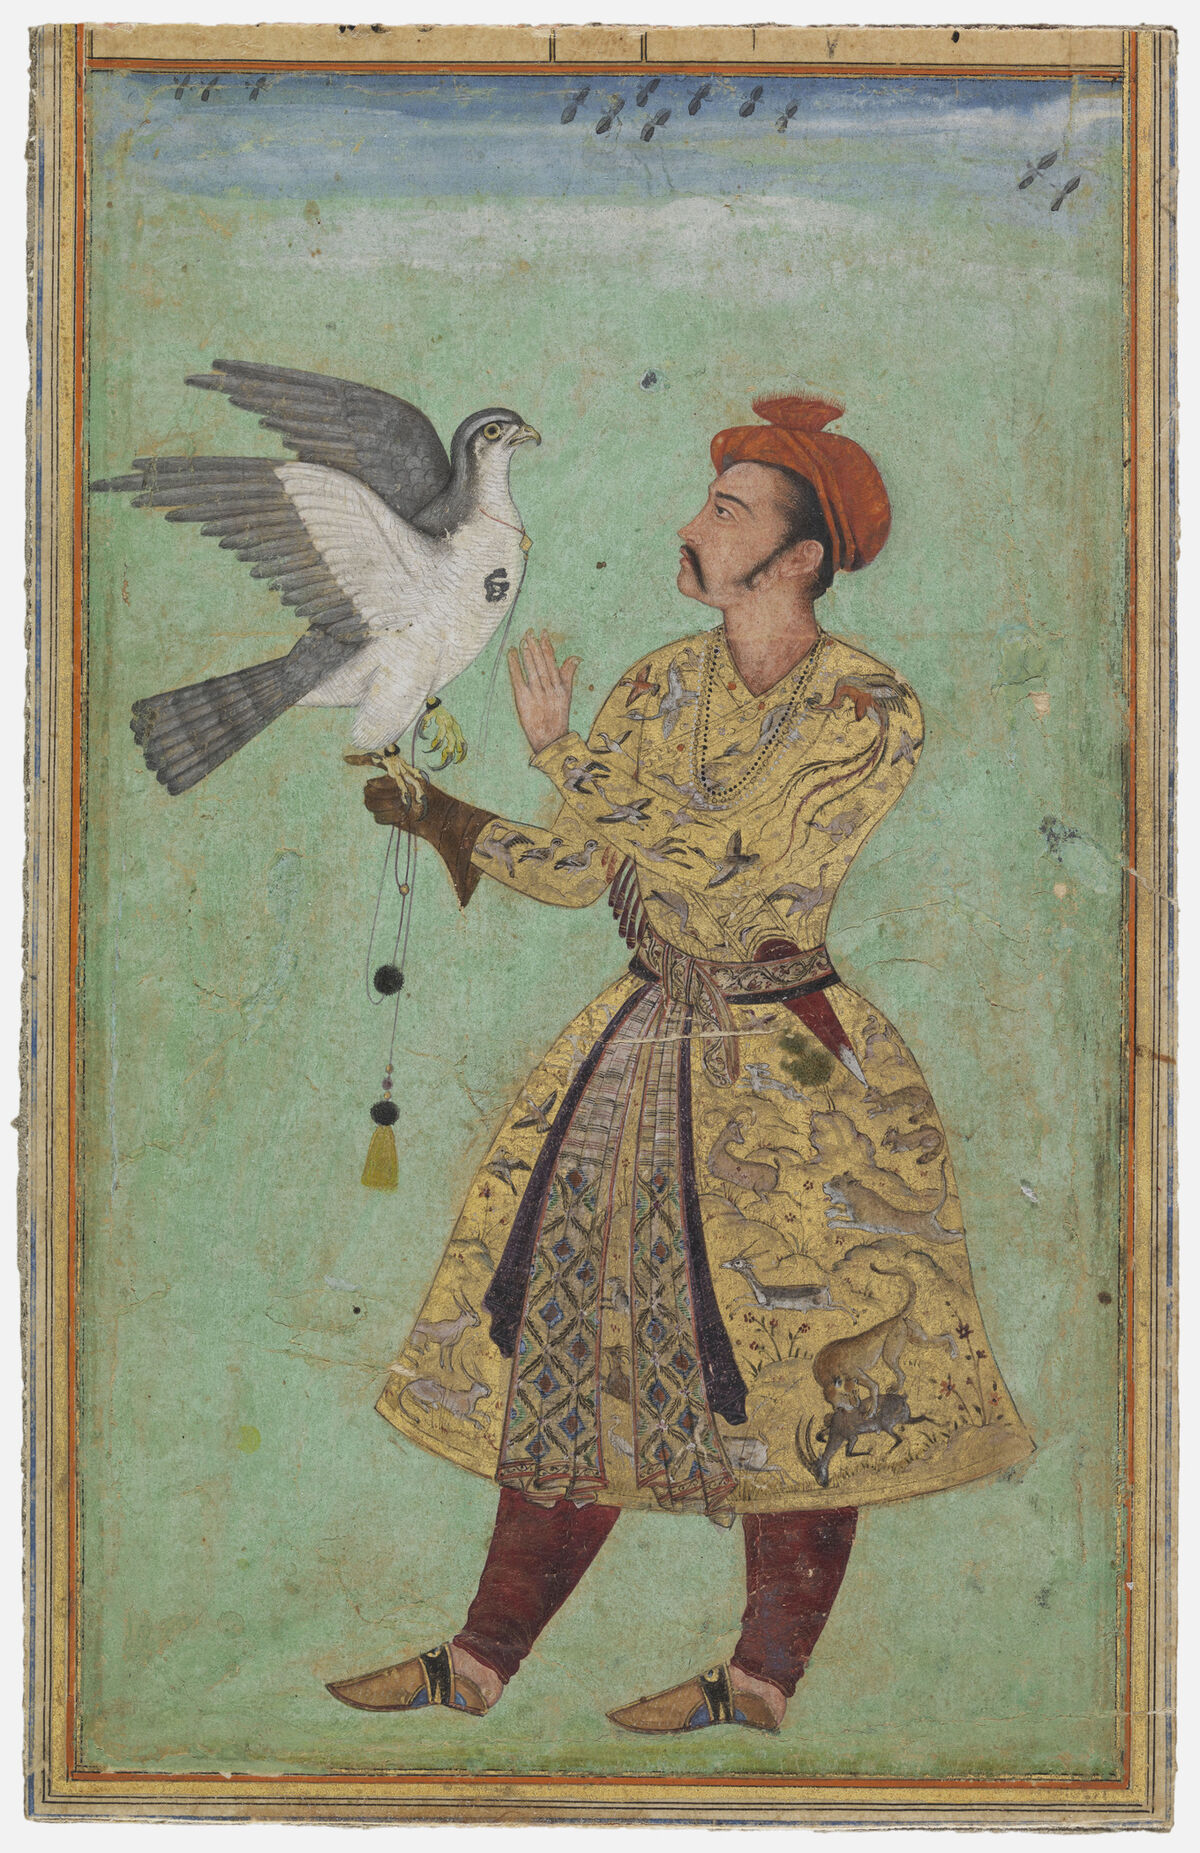 Unknown artist, Prince With a Falcon, 1600-1605. Courtesy of the Los Angeles County Museum of Art.